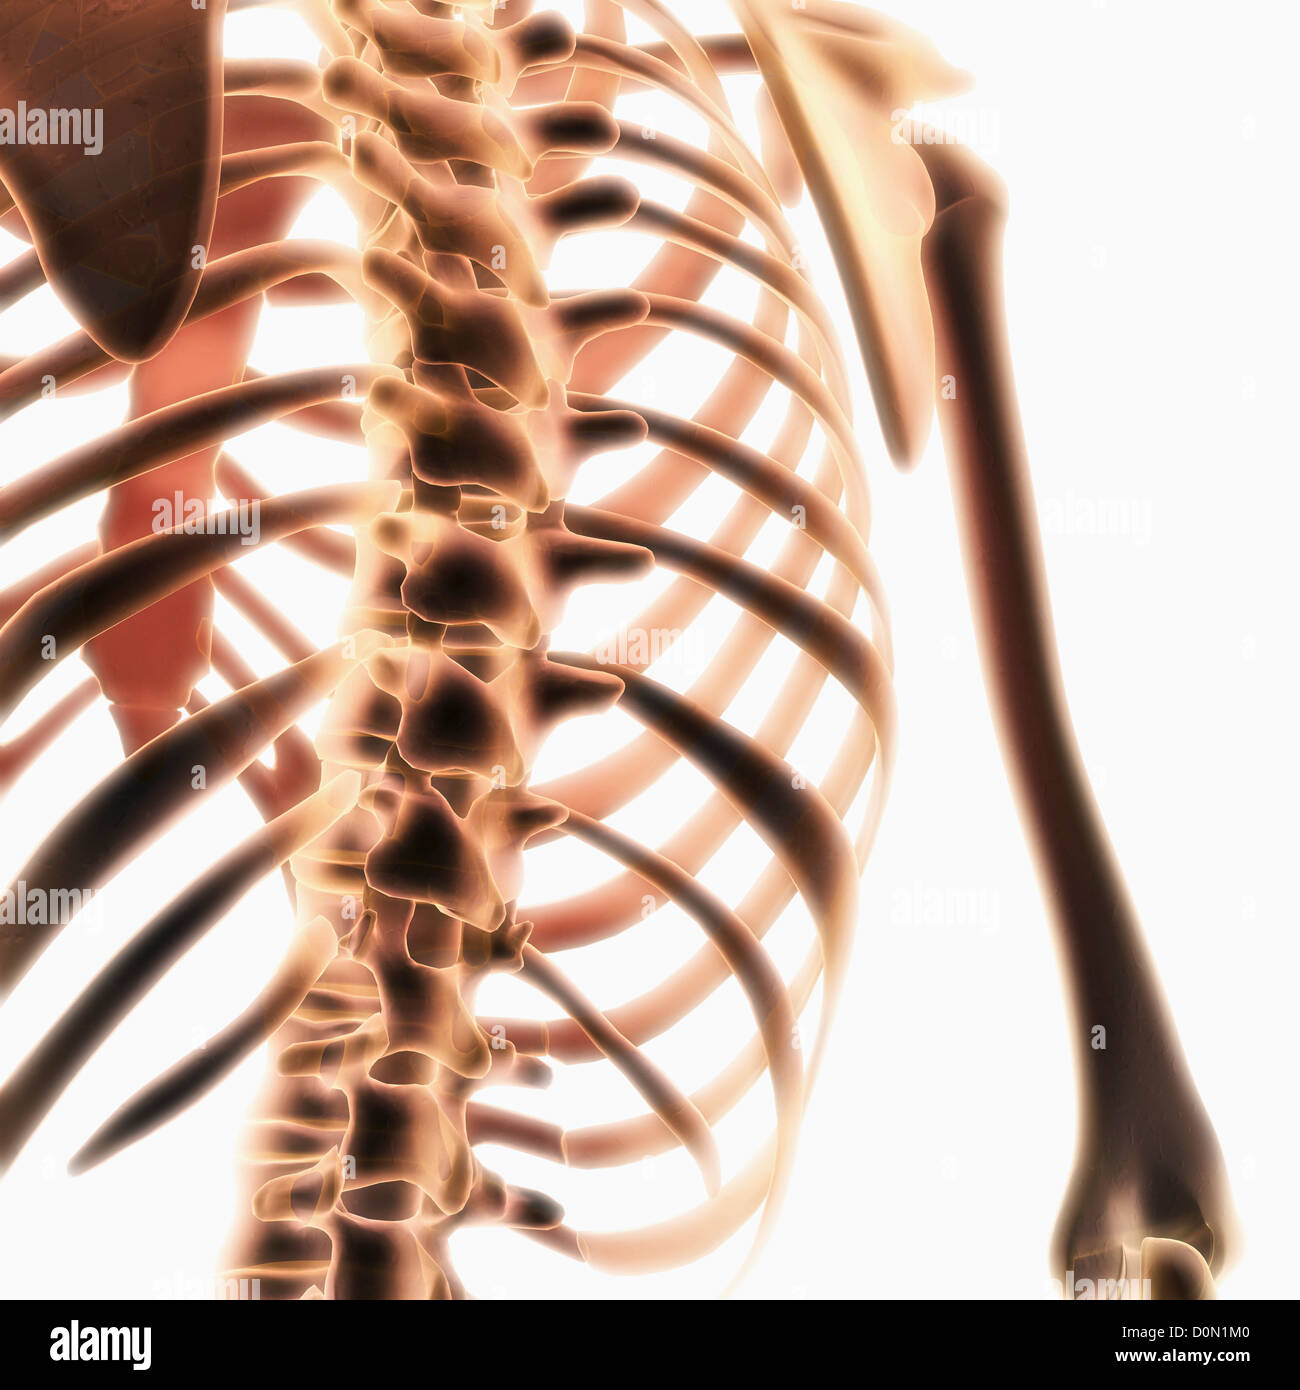 diagram of skeletal ribs reading panel wiring diagrams showing the structure spine and rib cage